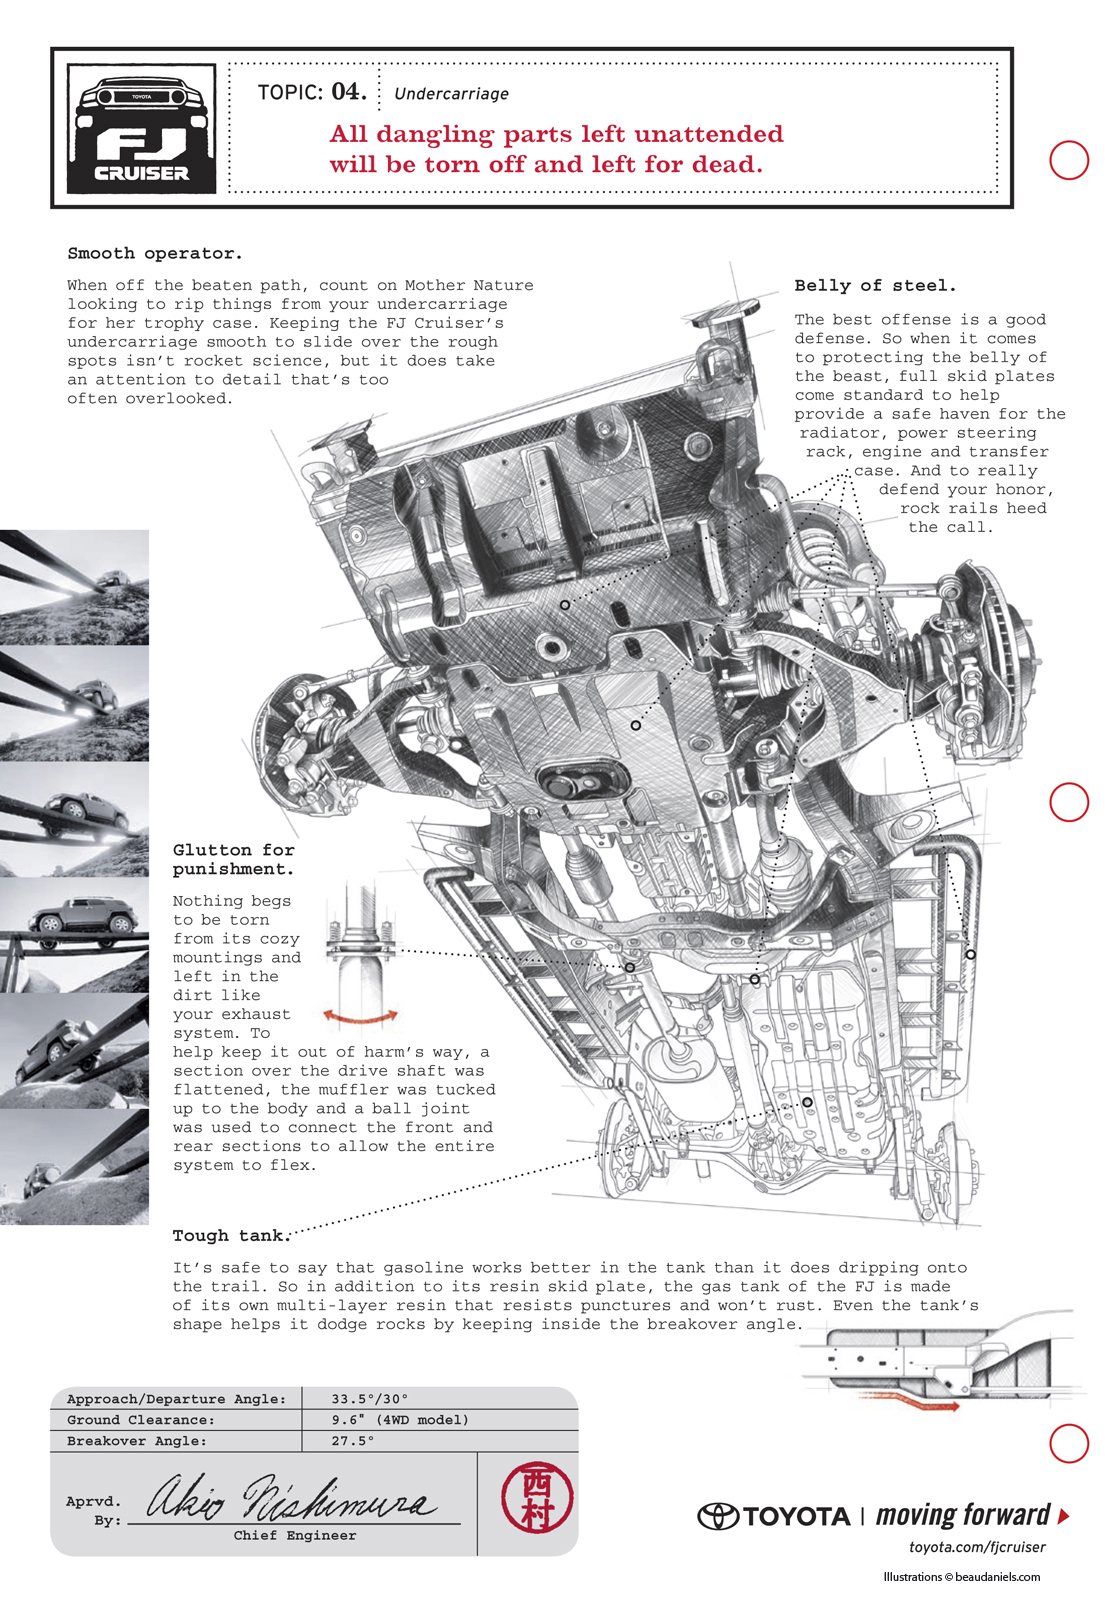 1997 toyota land cruiser engine diagram  u2022 wiring diagram